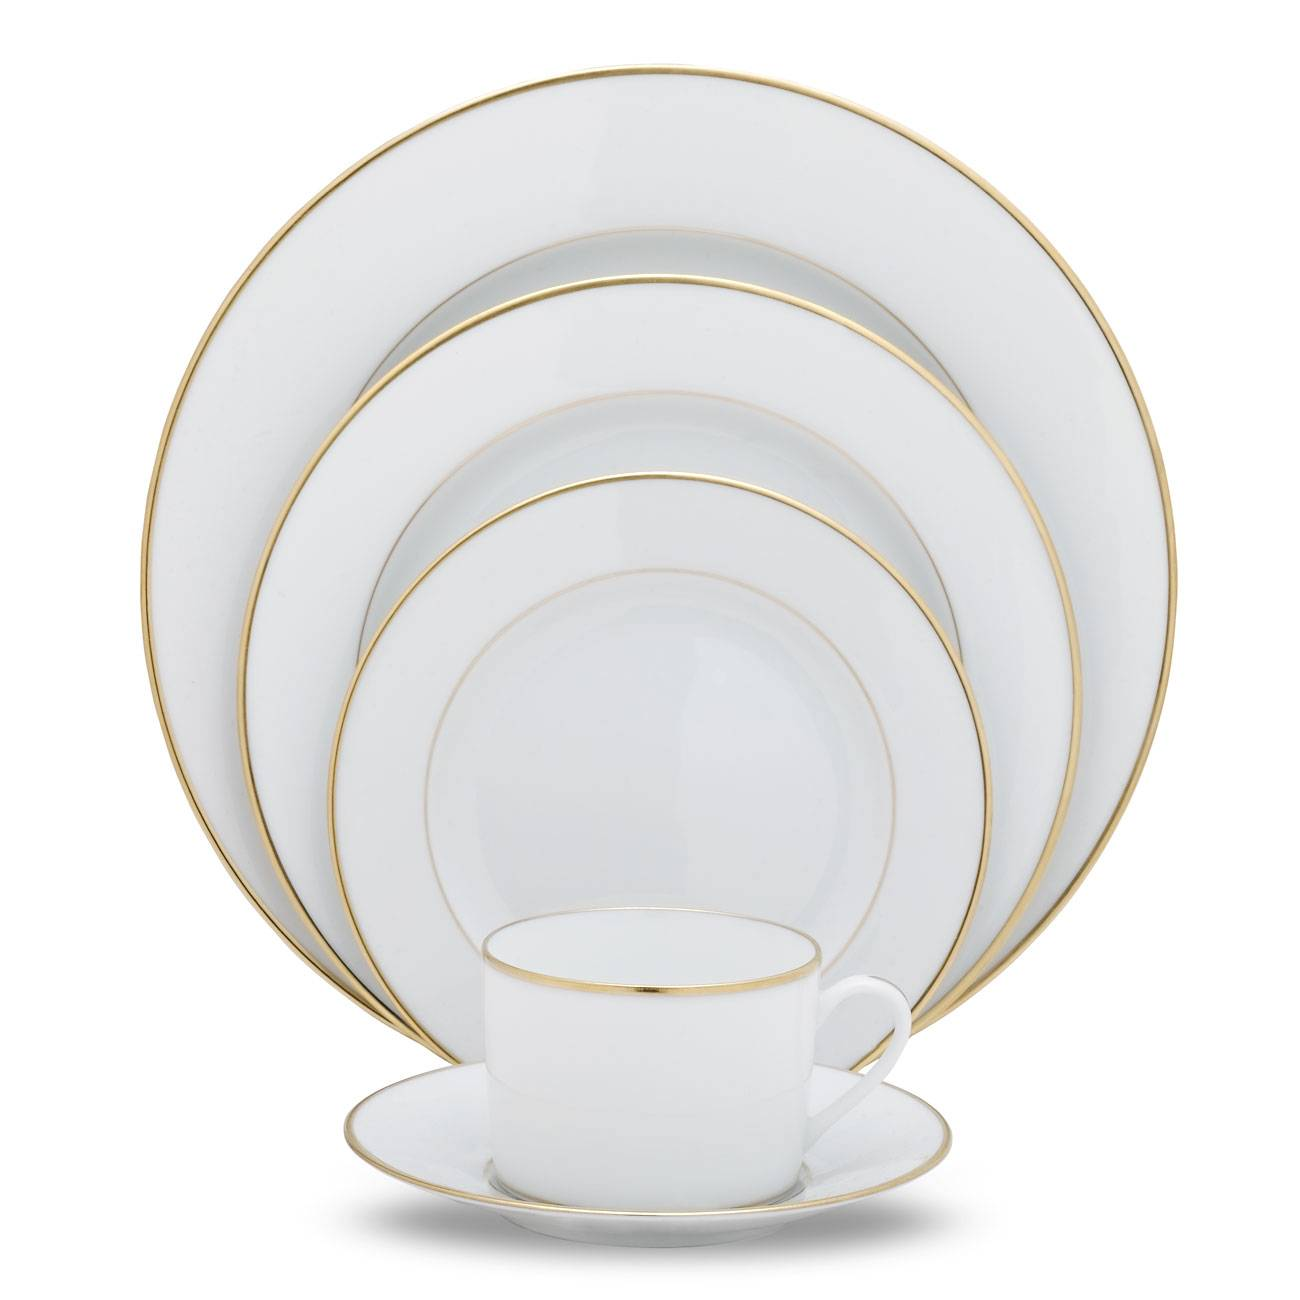 Christofle Albi Gold Collection  sc 1 st  Michael C. Fina : christofle tableware - pezcame.com